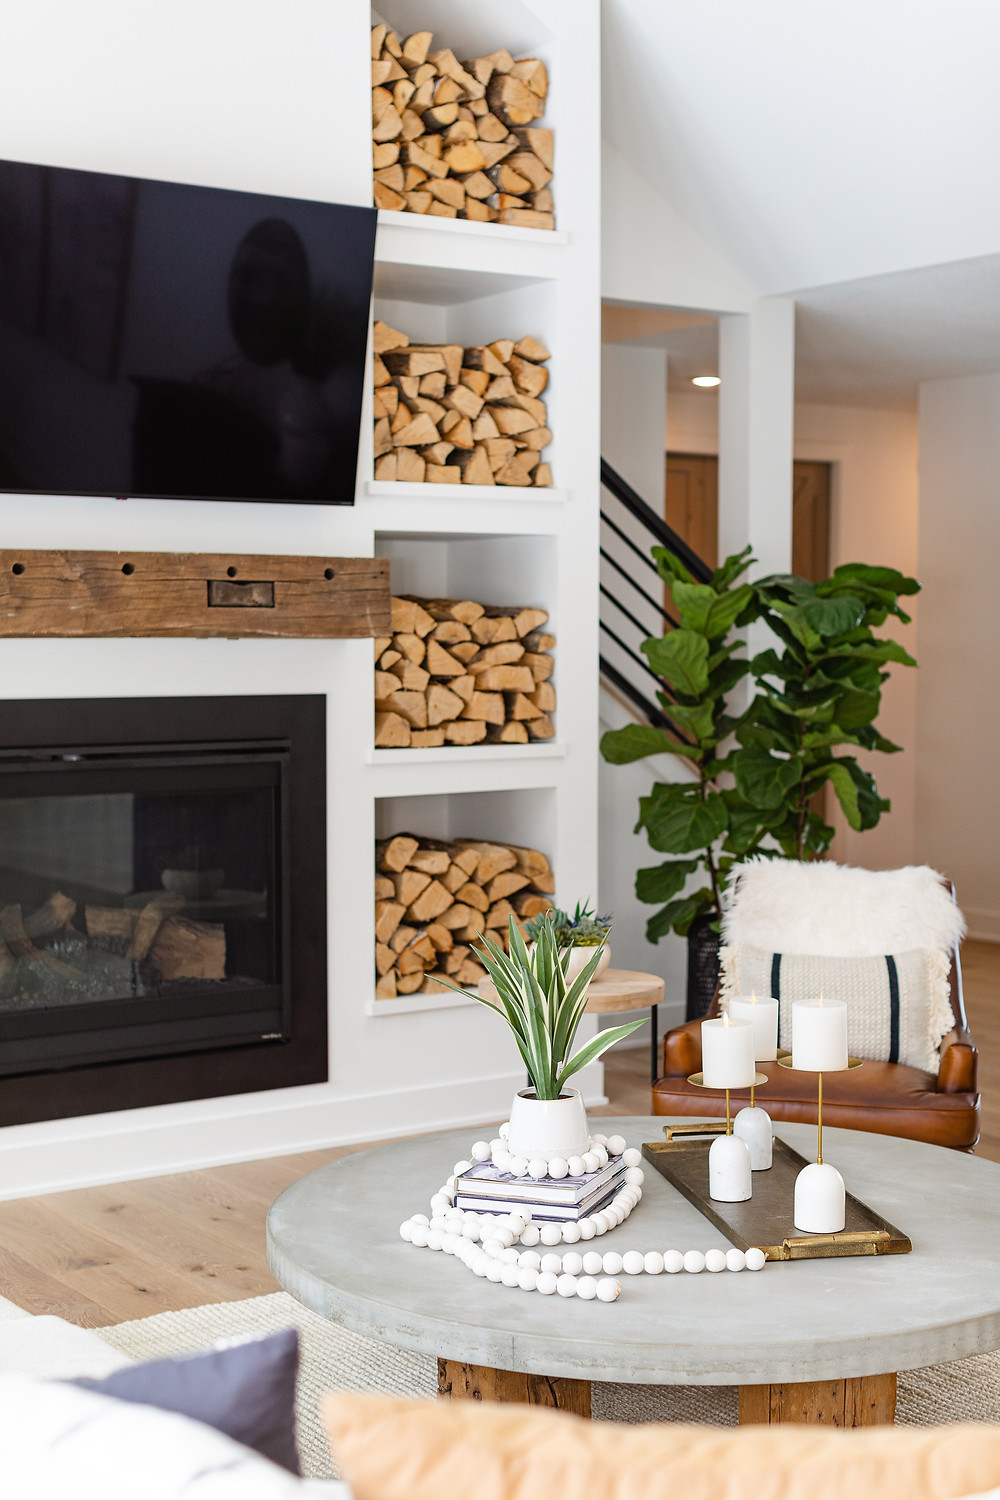 Stacked firewood, concrete round table, rustic mantle